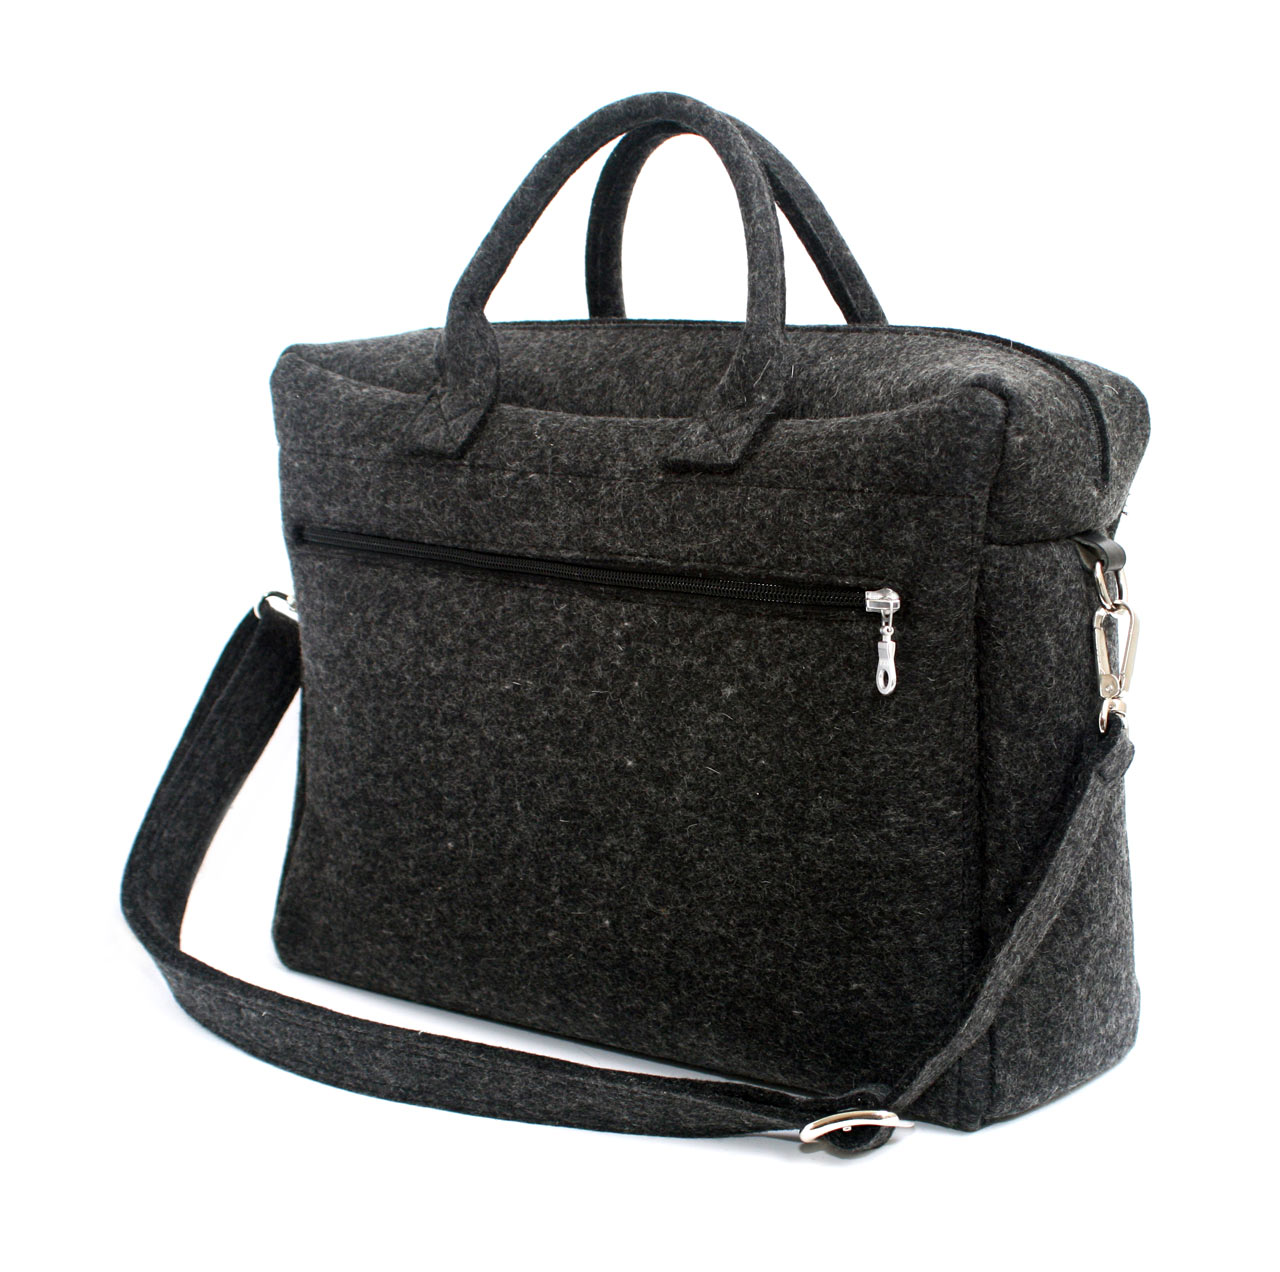 DAY Urban Bag by Manon Garritsen